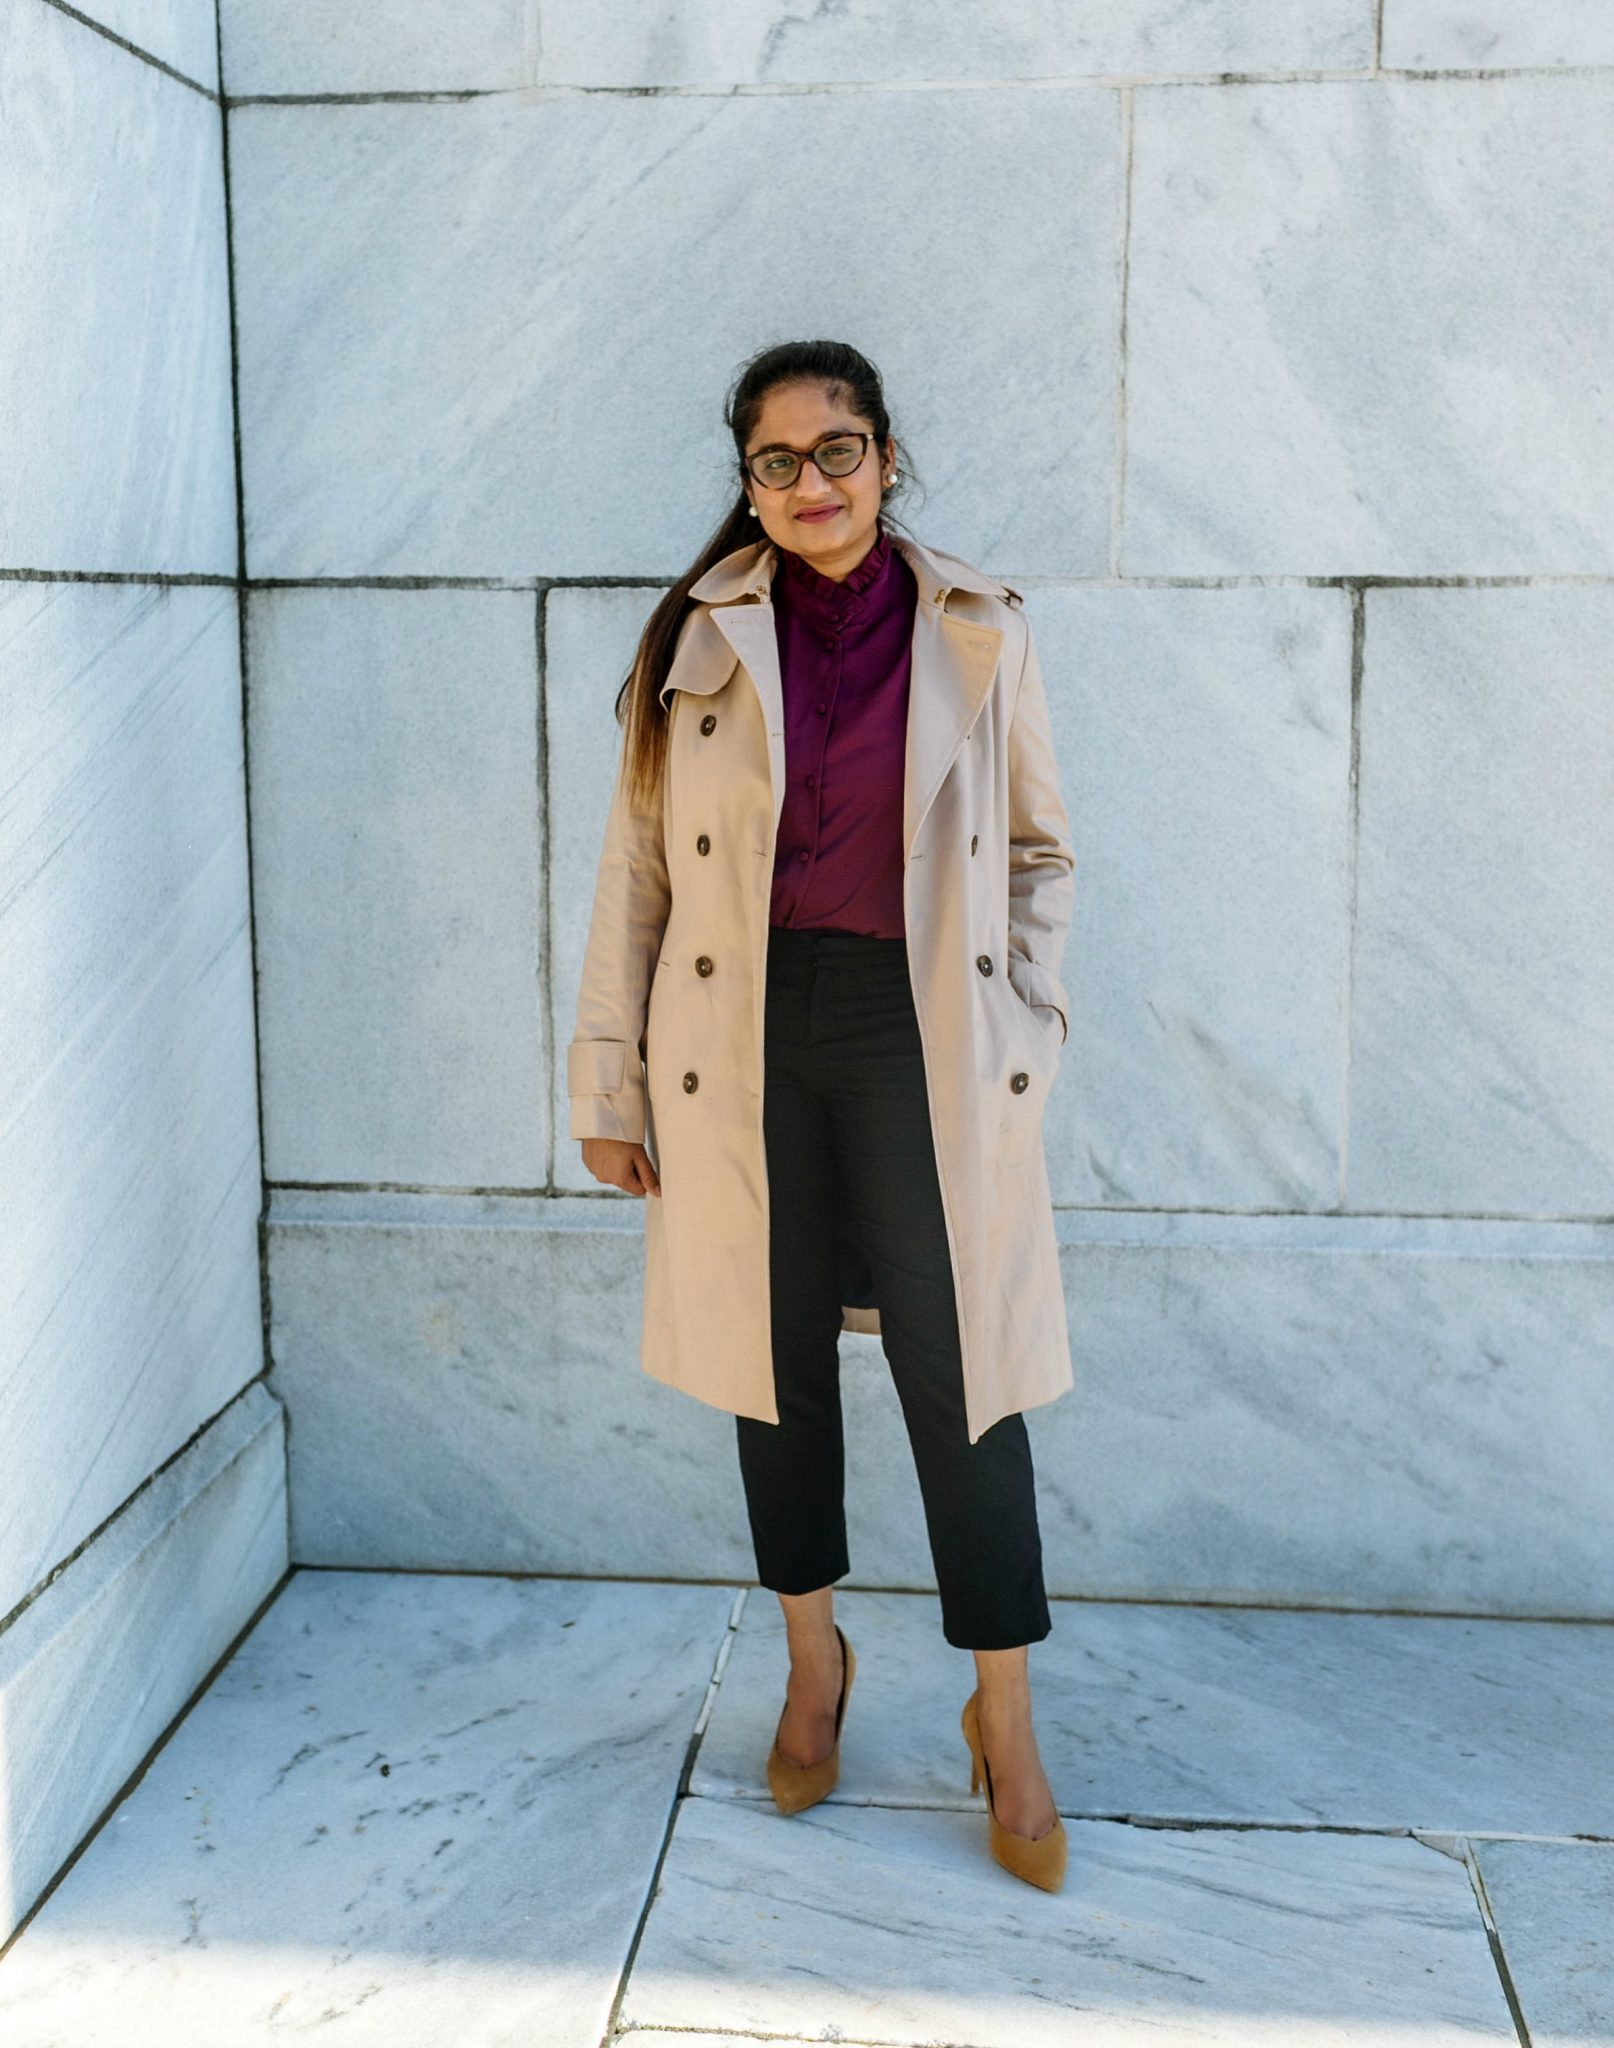 wearing brooks brothers Cotton Twill Trench Coat | 20 Outfit Fall colorful capsule wardrobe |Colorful Fall Work Outfits featured by popular Ohio modest fashion blogger, Dreaming Loud